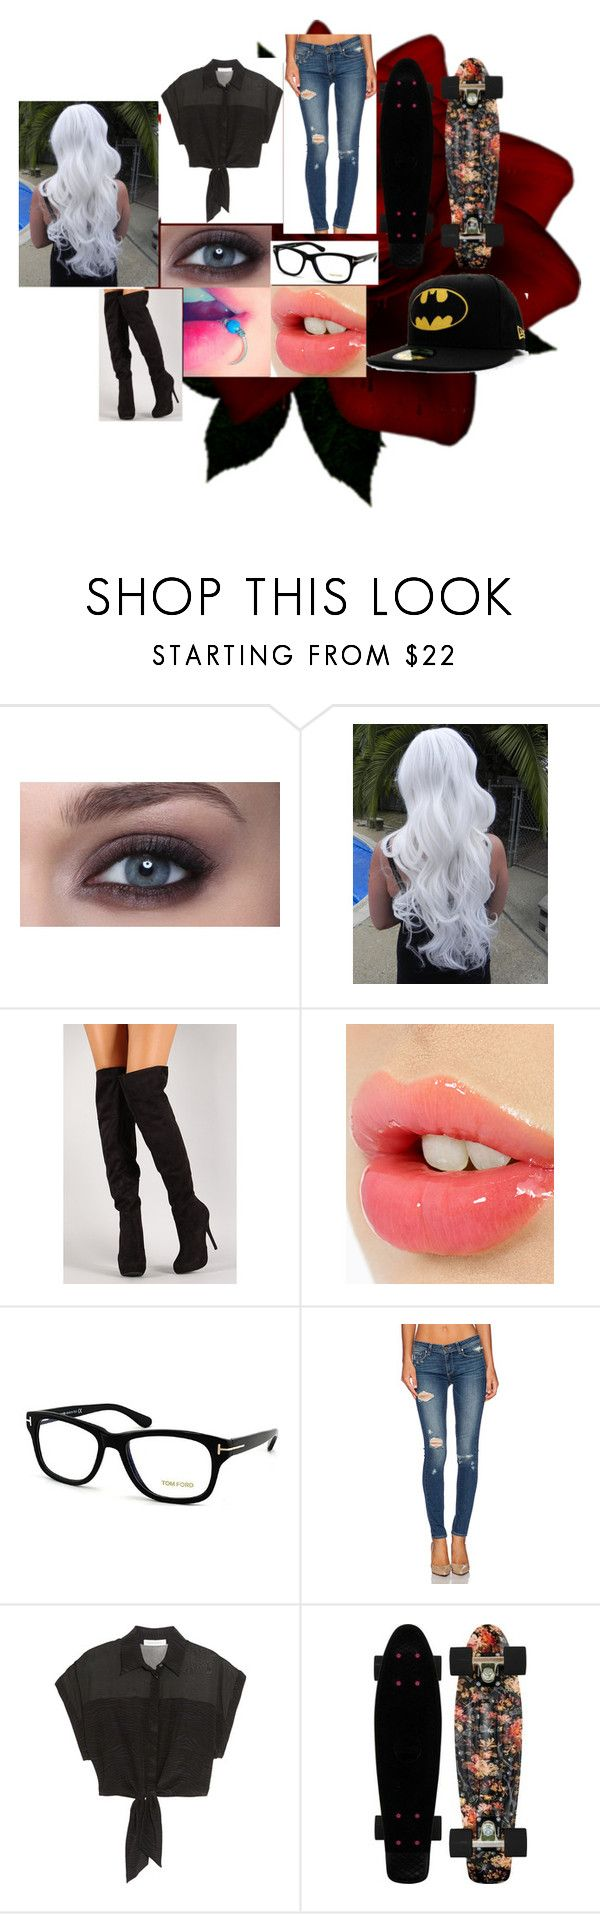 """Rigby meeting"" by kittenkittykat123 ❤ liked on Polyvore featuring Charlotte Tilbury, Tom Ford, Paige Denim and Pierre Balmain"